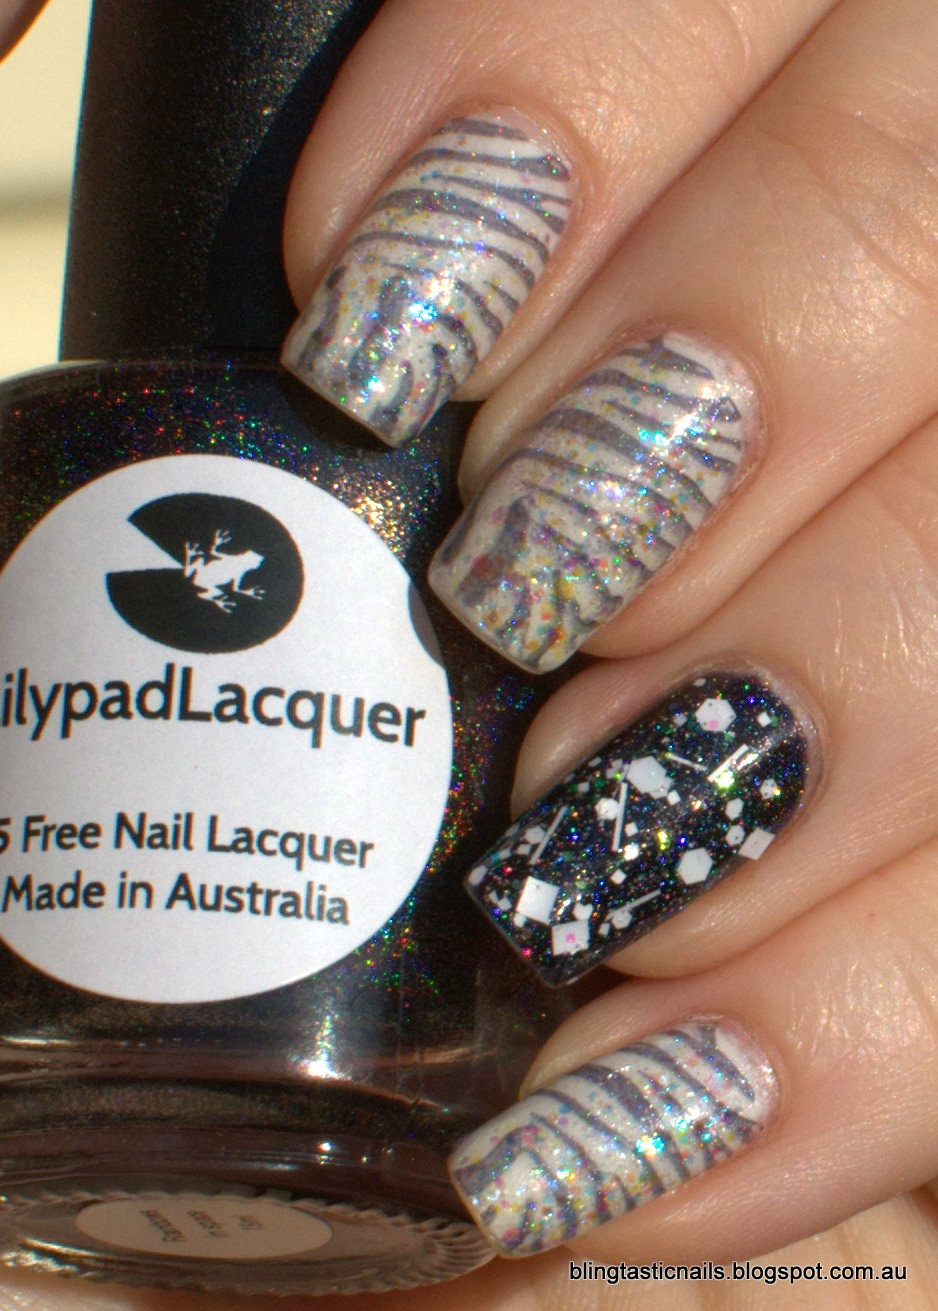 China Glaze Dandy Lyin' Around, China Glaze Snowglobe and Lilypad Lacquer Rainbows in Space